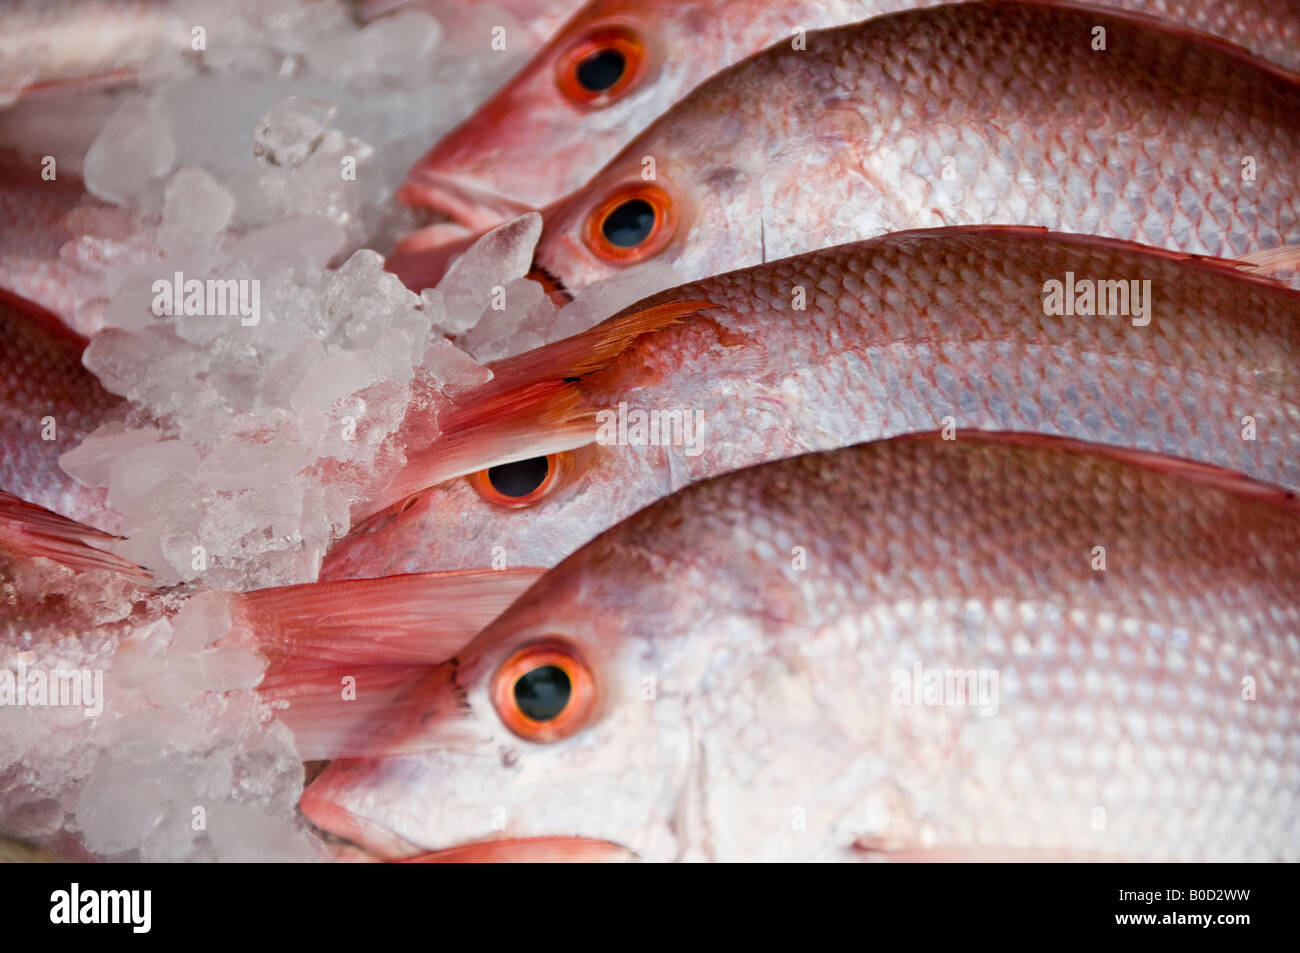 Fresh Red Snapper fish - Huachinango in Spanish - packed in ice for sale in market stall in Puebla, Mexico. Stock Photo